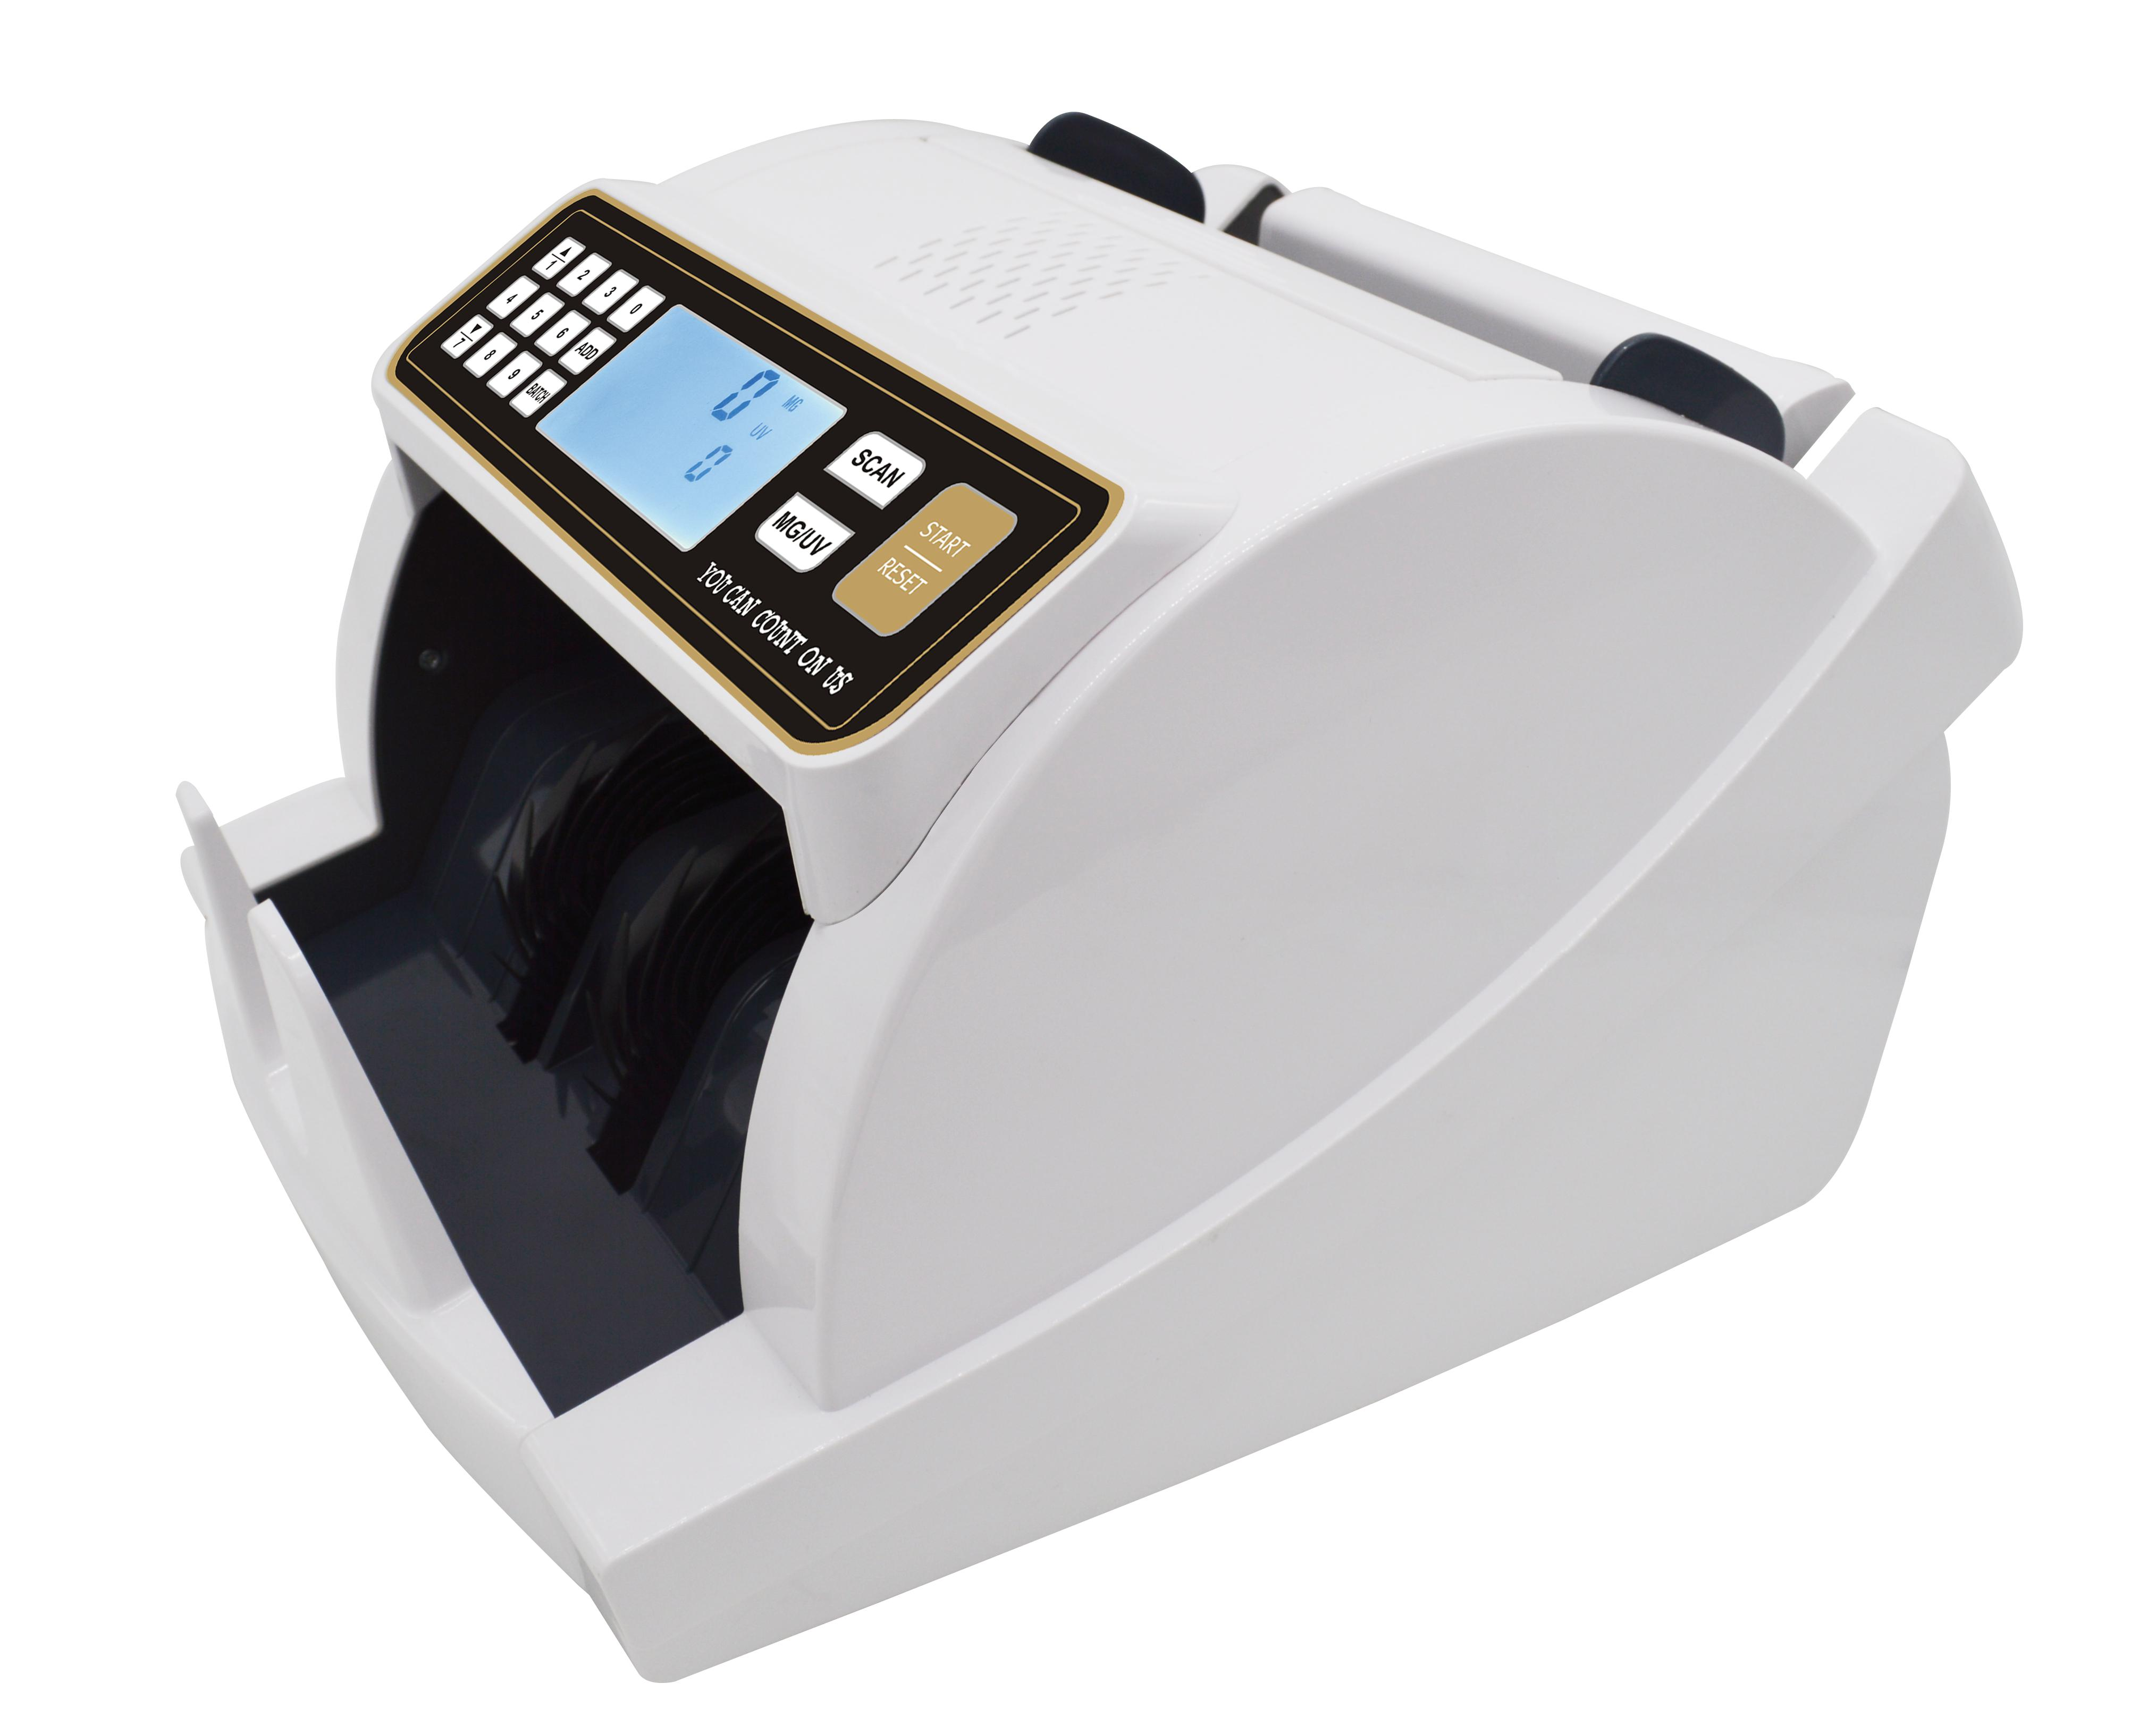 IR SCANNER VALUE COUNTER,UV/MG MONEY COUNTER